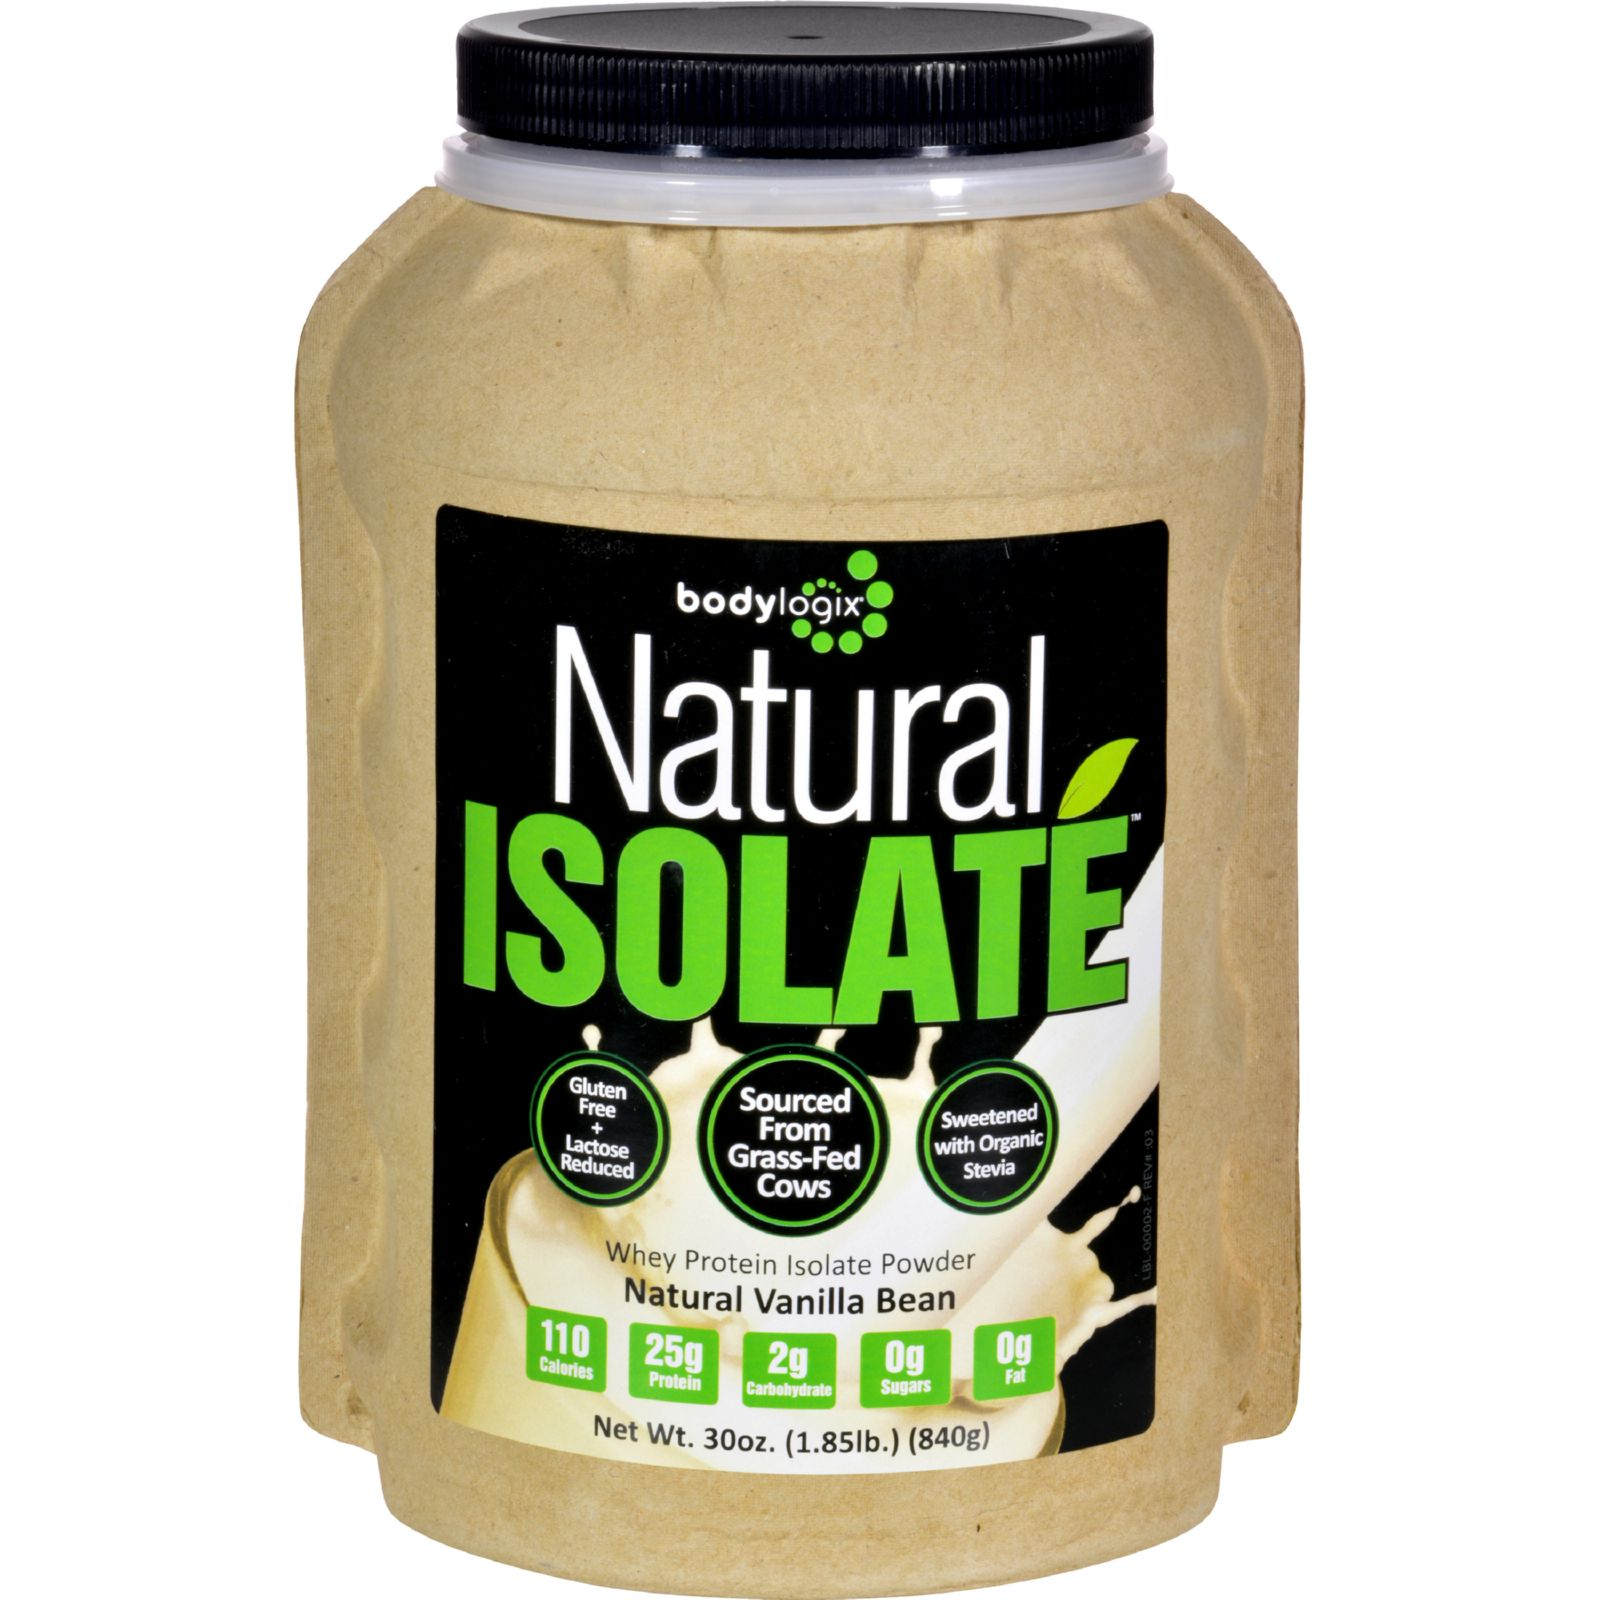 Bodylogix Isolate Powder - Natural Whey - Vanilla Bean - 1.85 lb